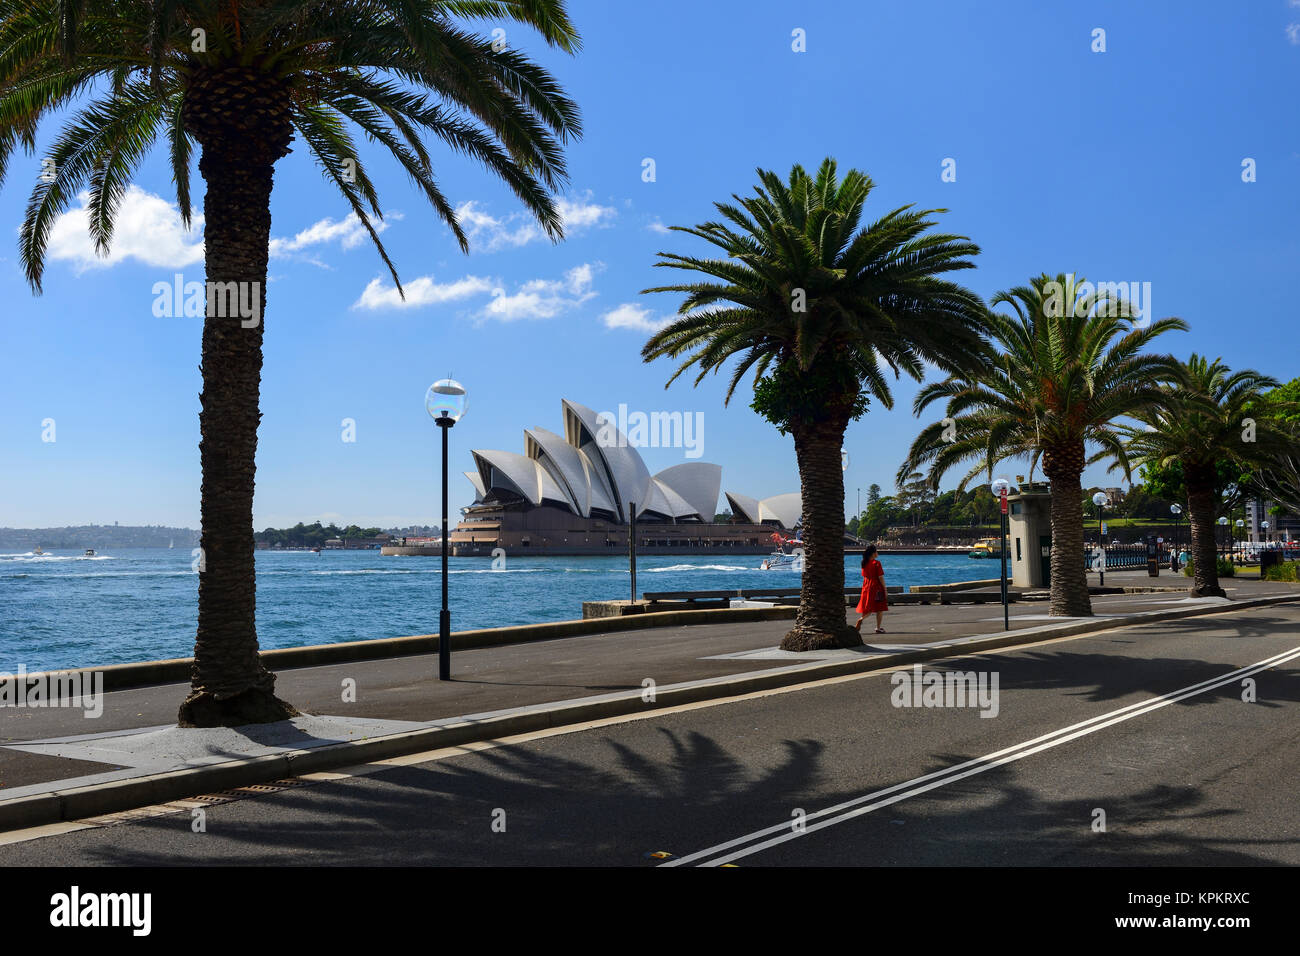 Sydney Opera House through palm trees on Hickson Road, Campbell's Cove, The Rocks, Sydney, New South Wales, - Stock Image